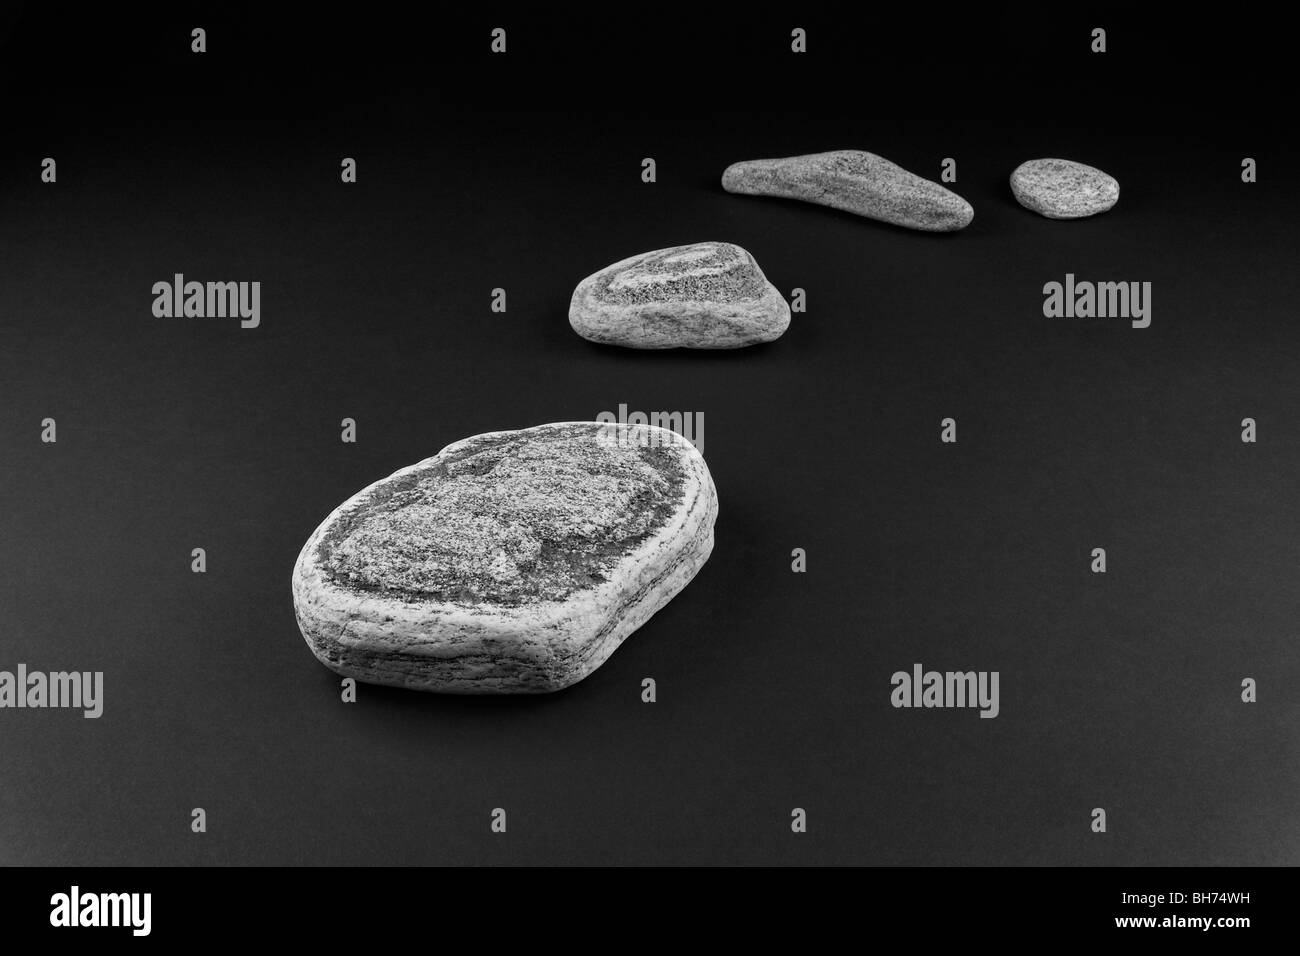 zen spirit inspired stone arrangement - Stock Image